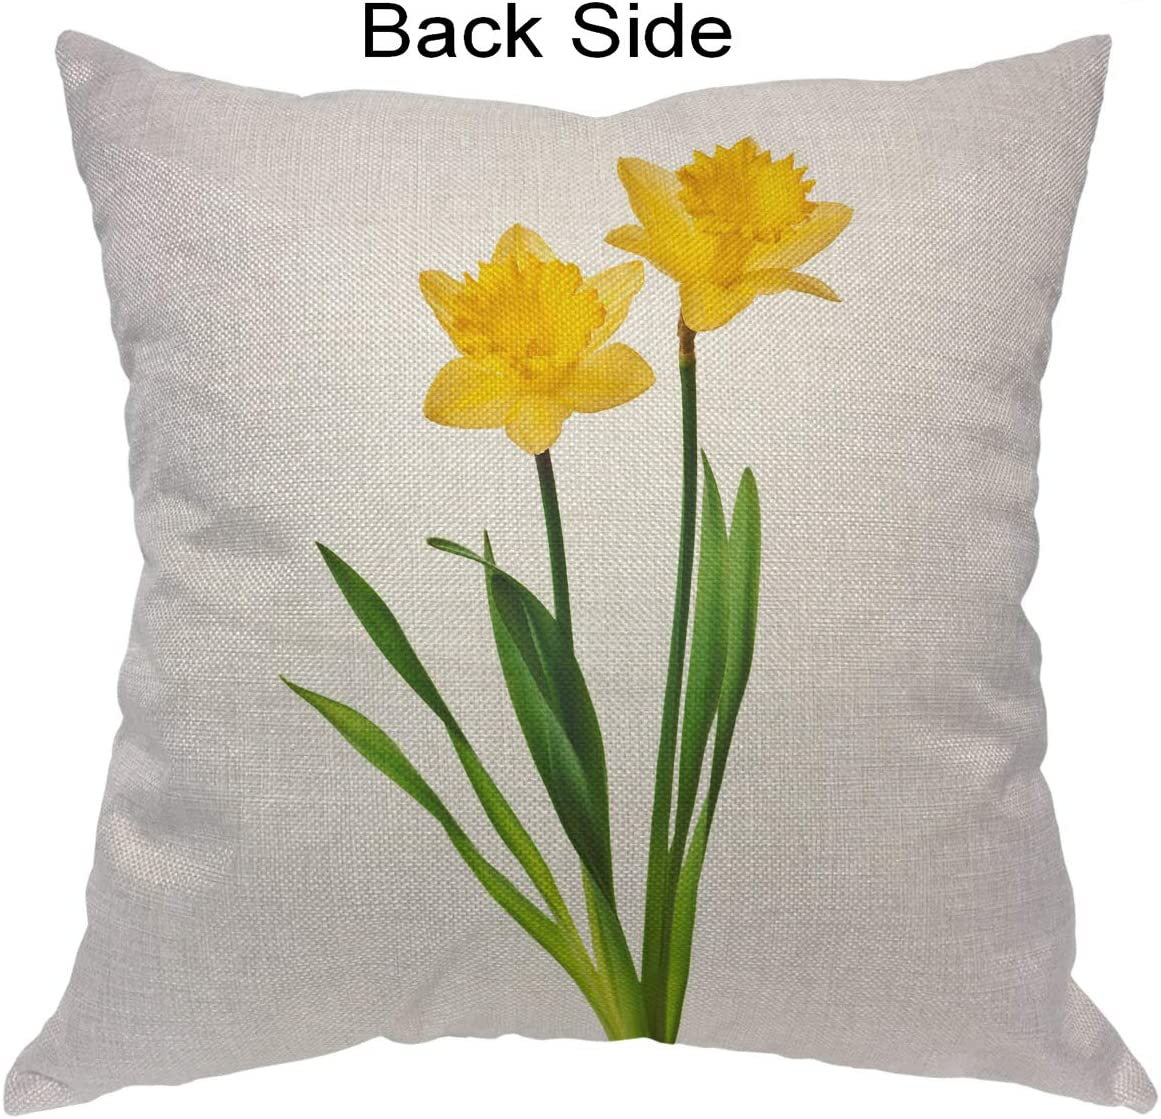 Amazon Com Moslion Daffodil Pillows Nature Botanical Narcissus Flower Blossom With Leaf In Spring Yellow Green Pillow Cover Decorative Square Accent Cotton Linen Throw Pillow Case 20x20 Inch For Sofa Chair Home